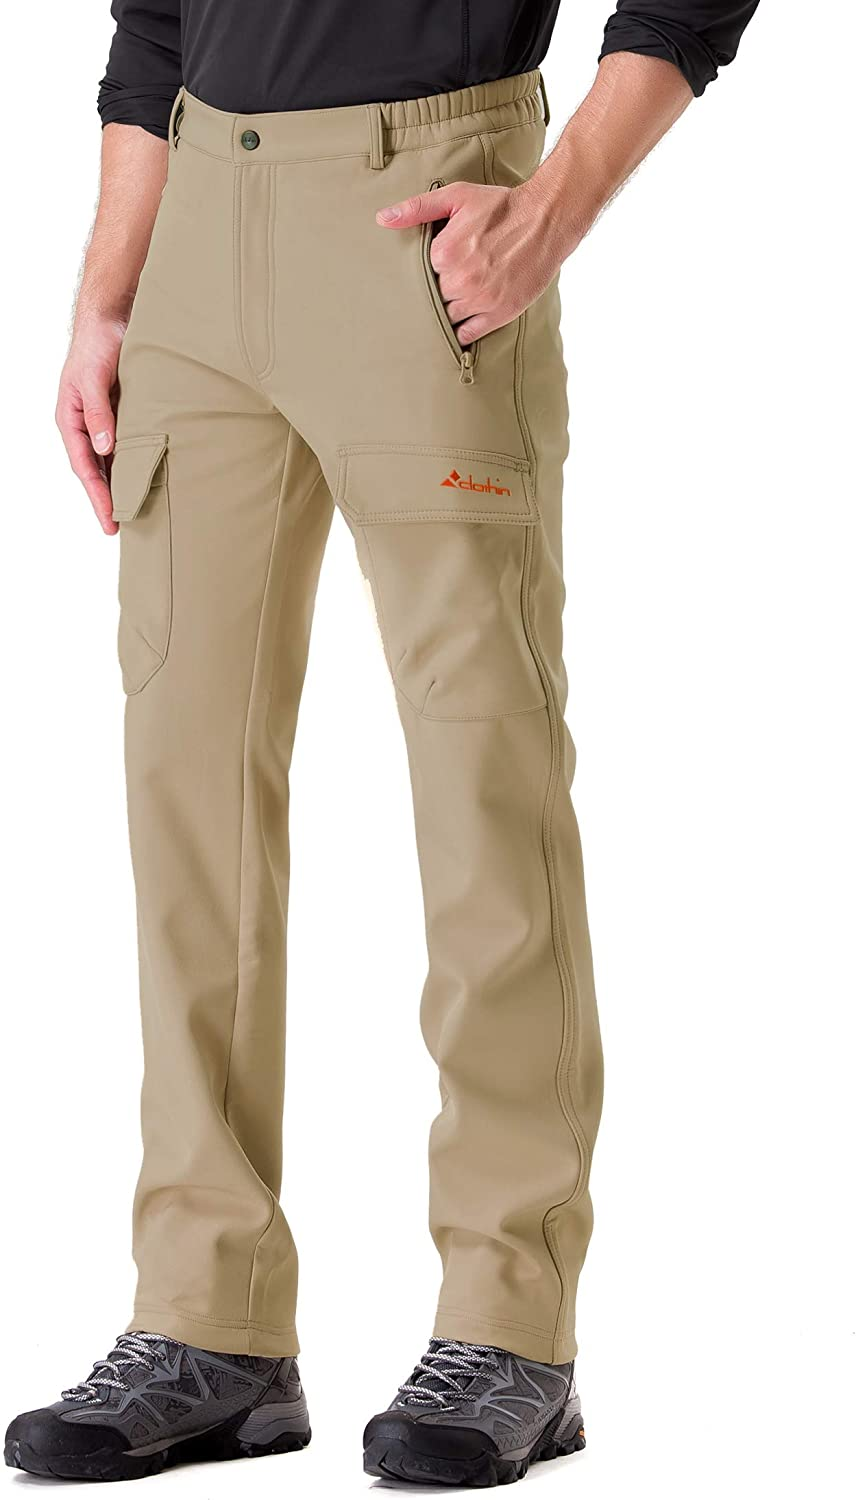 Clothin Mens Softshell Fleece-Lined Cargo Pants - Warm, Breathable, Water-Repellent, Wind-Resistant-Insulated